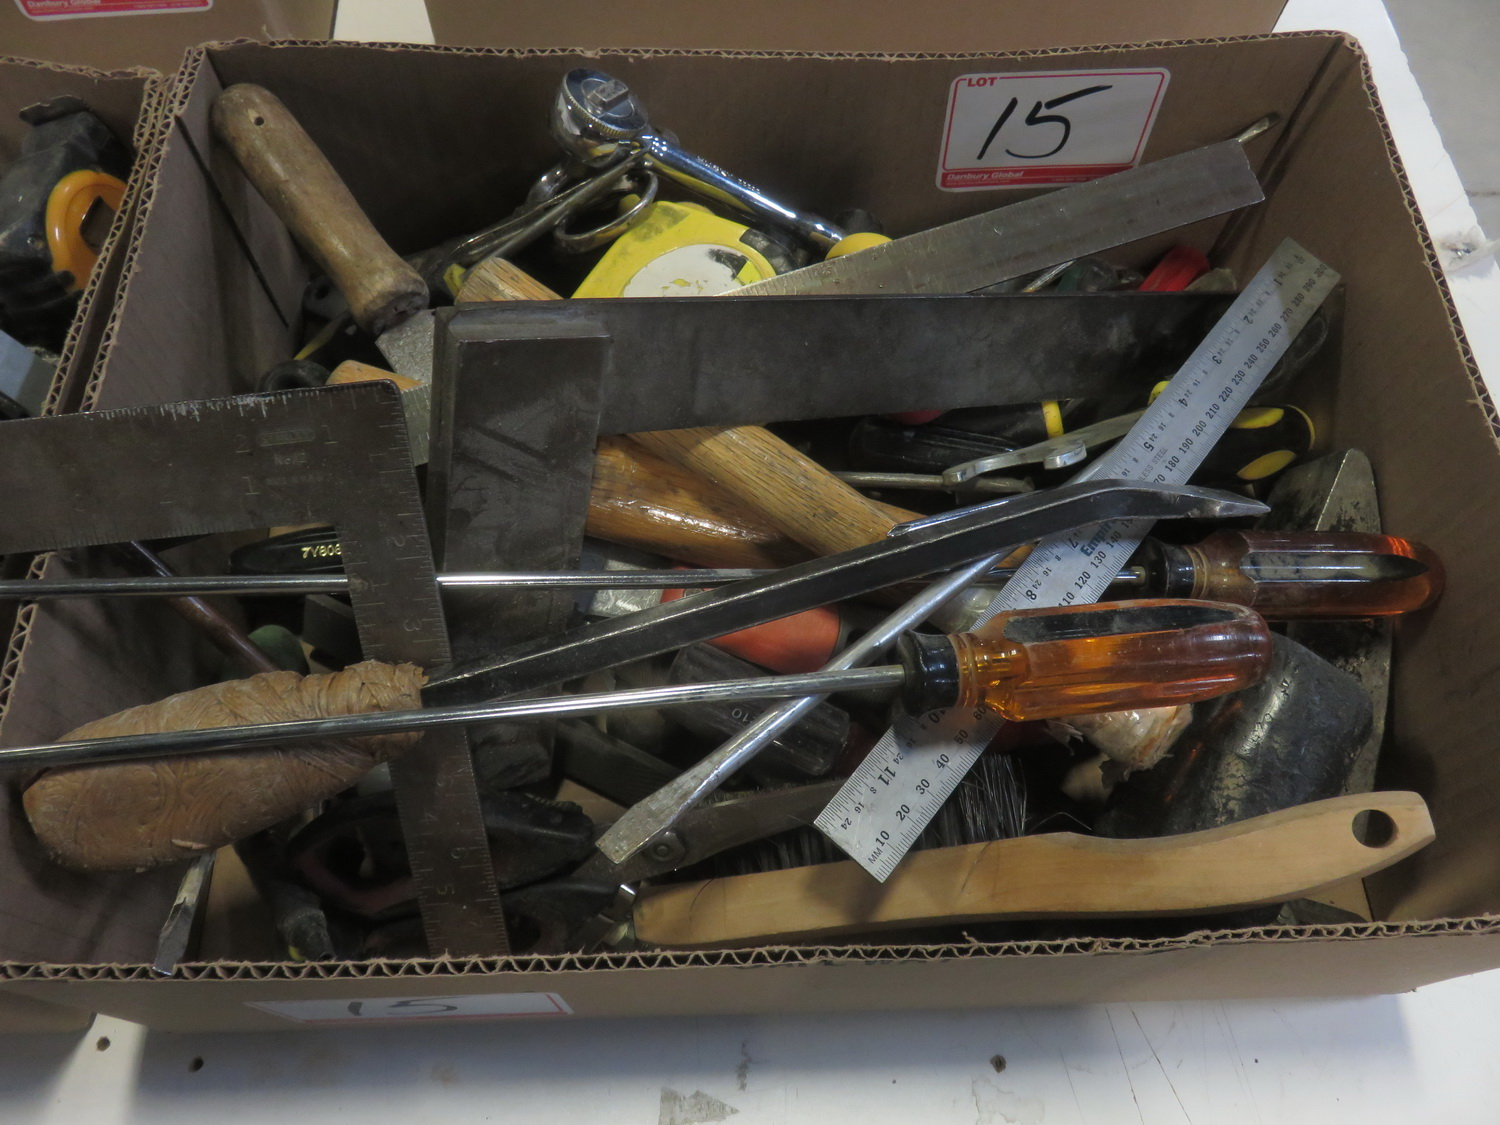 LOT - SOCKETS, TAPE MEASURES, HAMMERS, & ASSTD TOOLS - Image 2 of 2